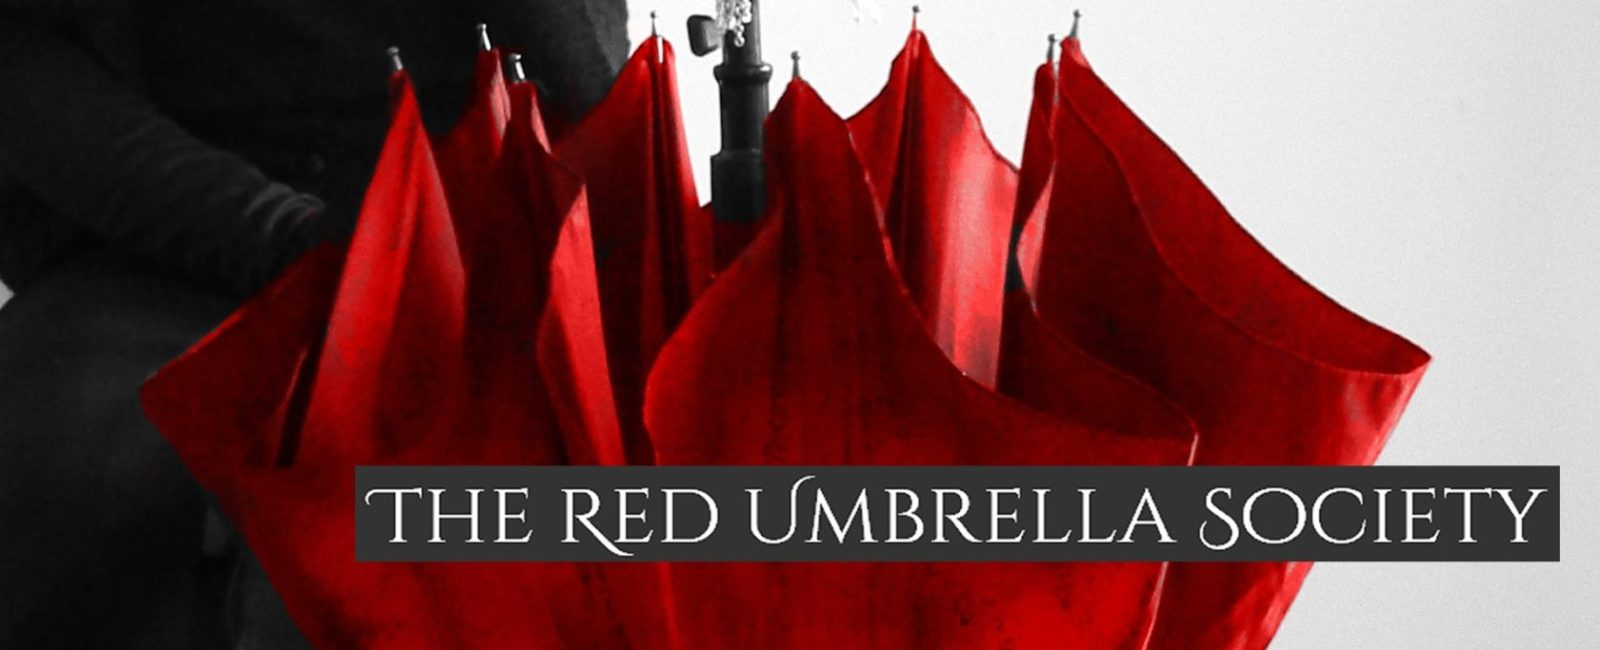 The Red Umbrella Society